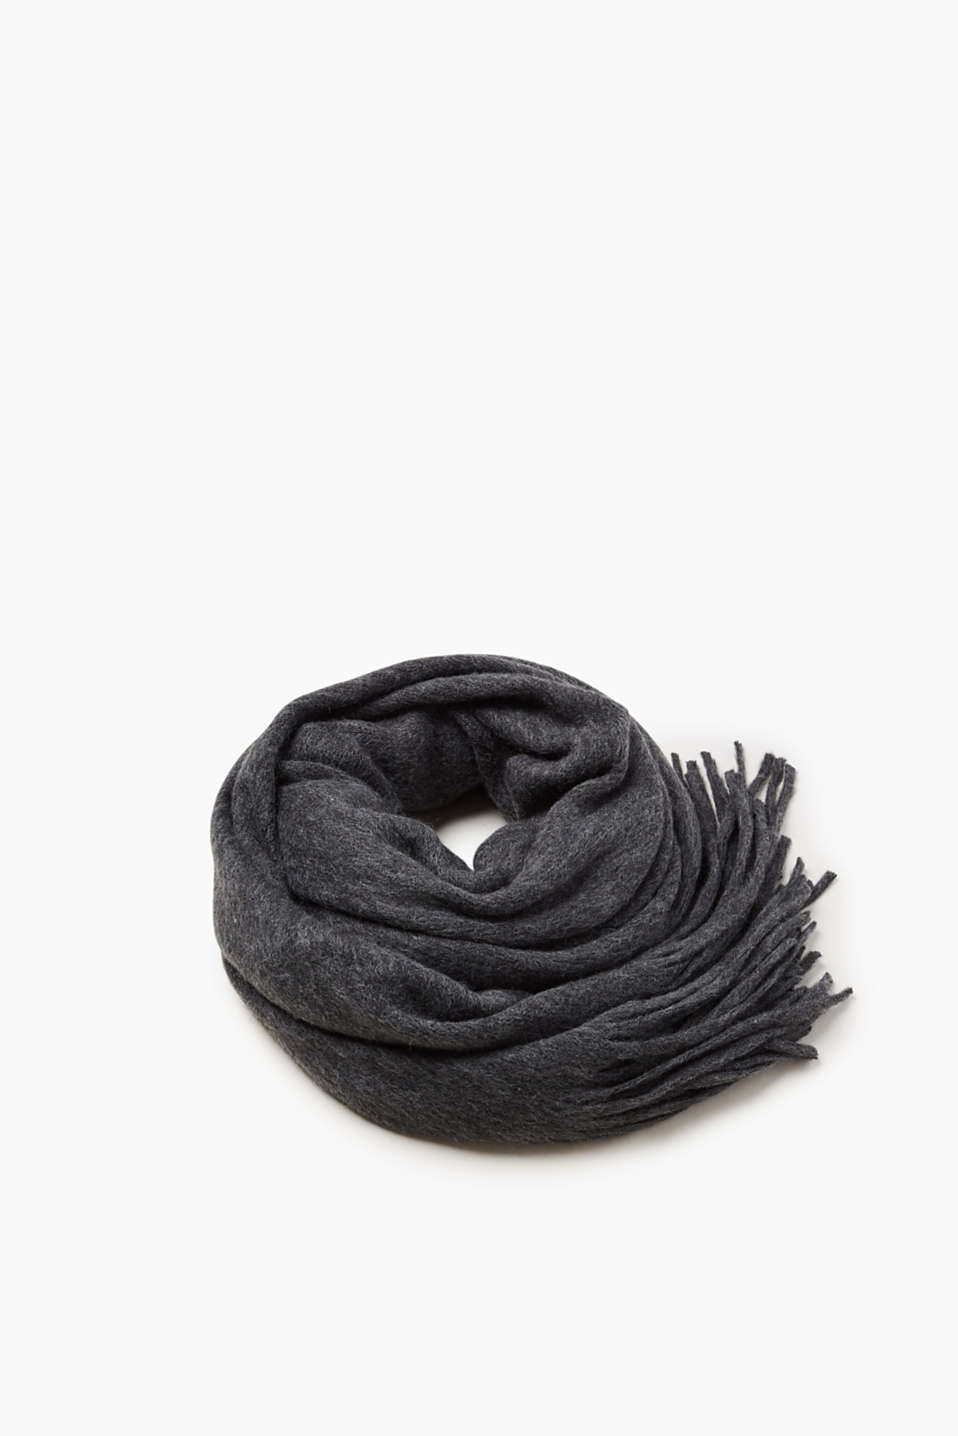 Oversized style par excellence! This scarf impresses not only with its XXL format, but also with its soft knit.